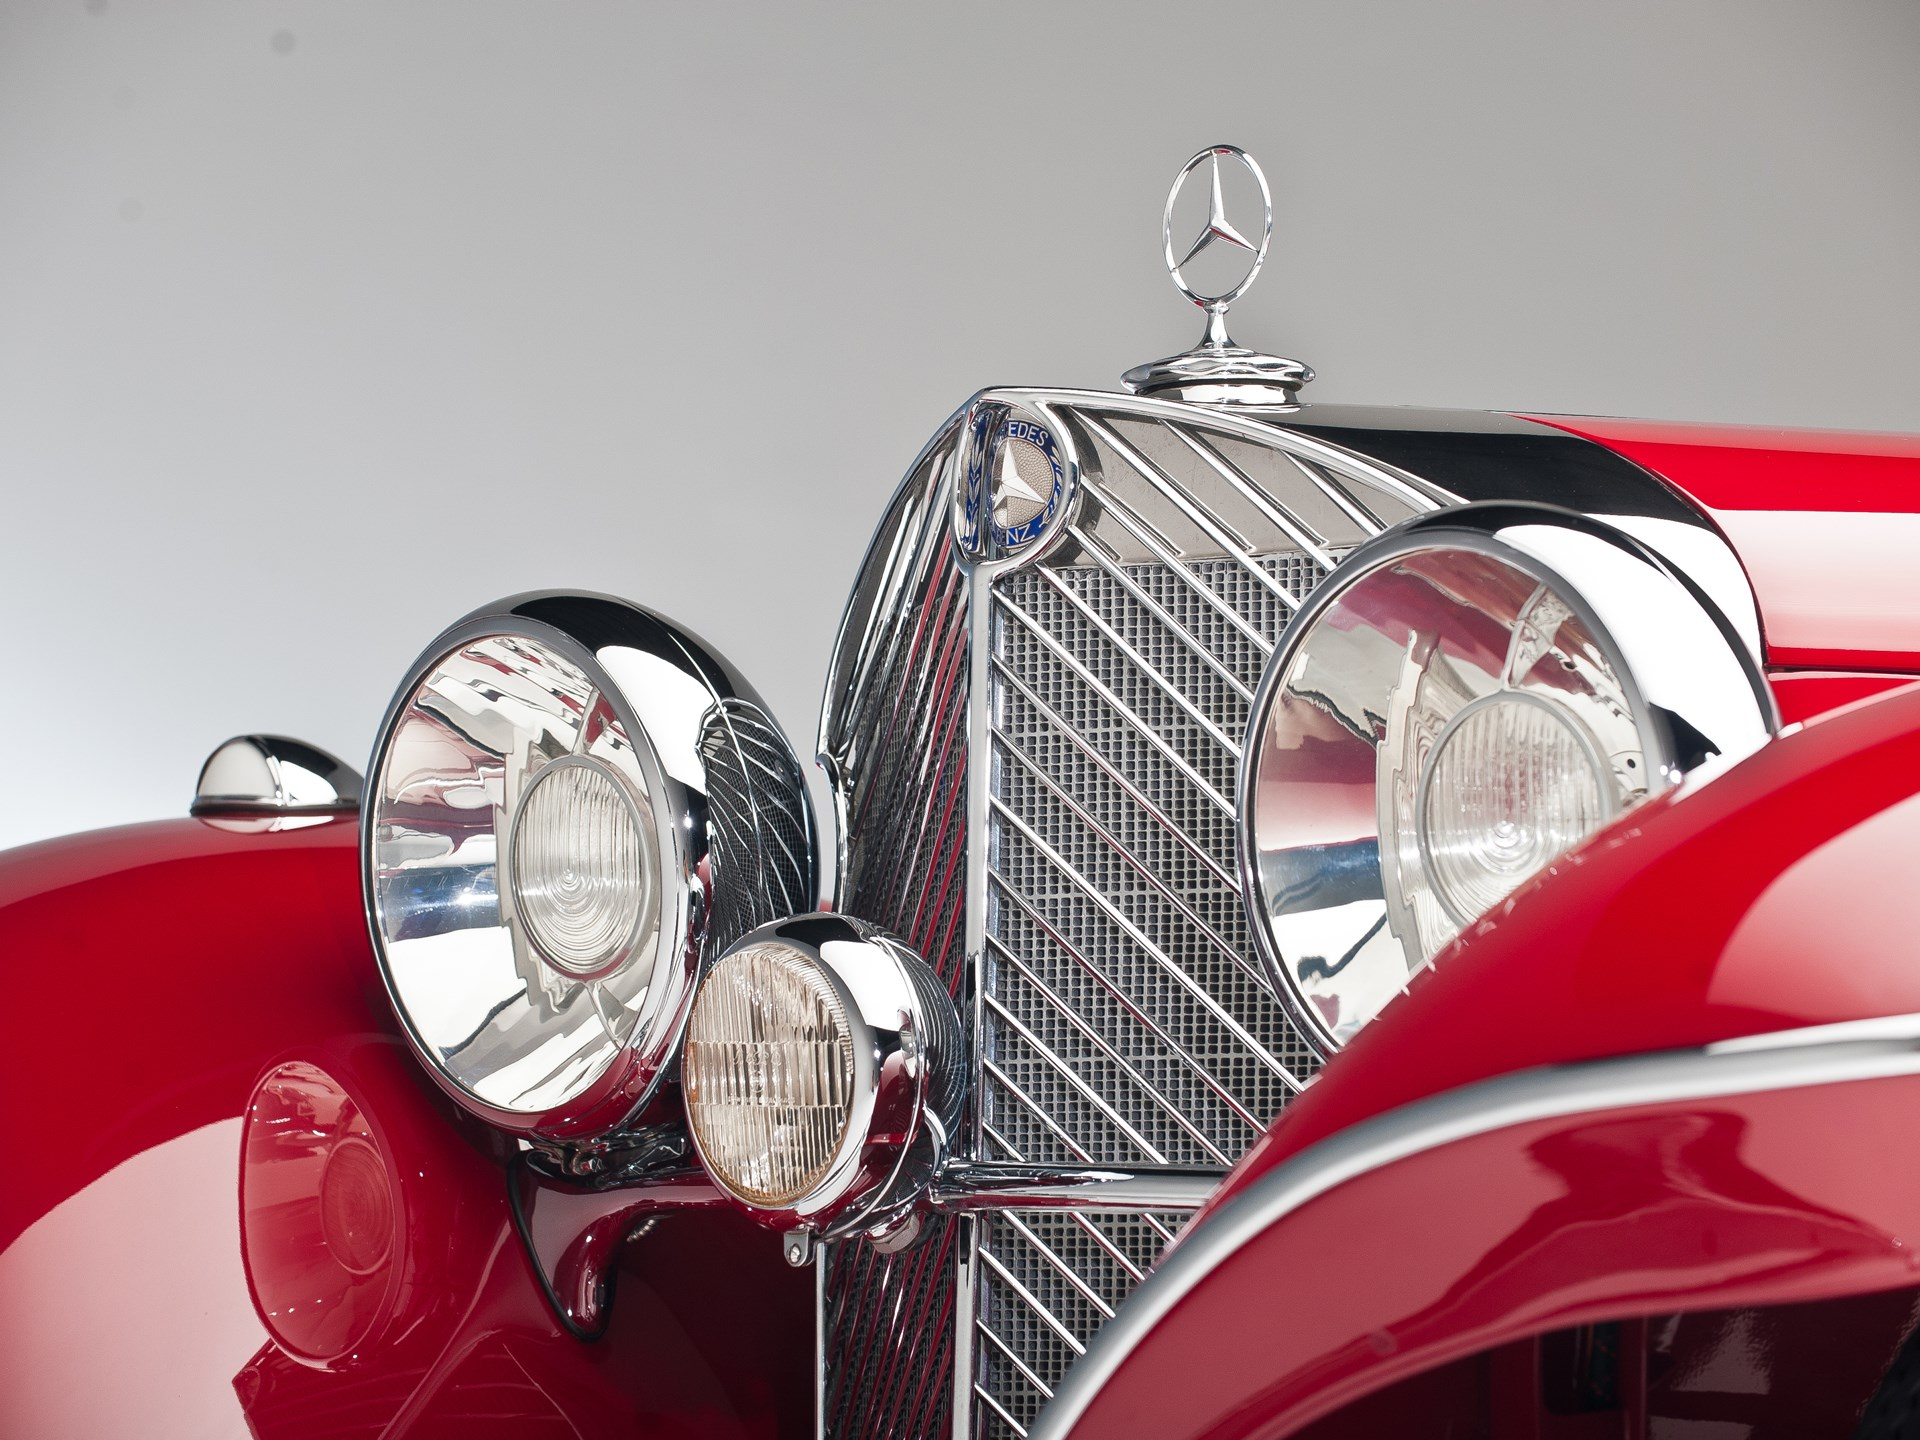 1935 Mercedes-Benz 500k grille detail